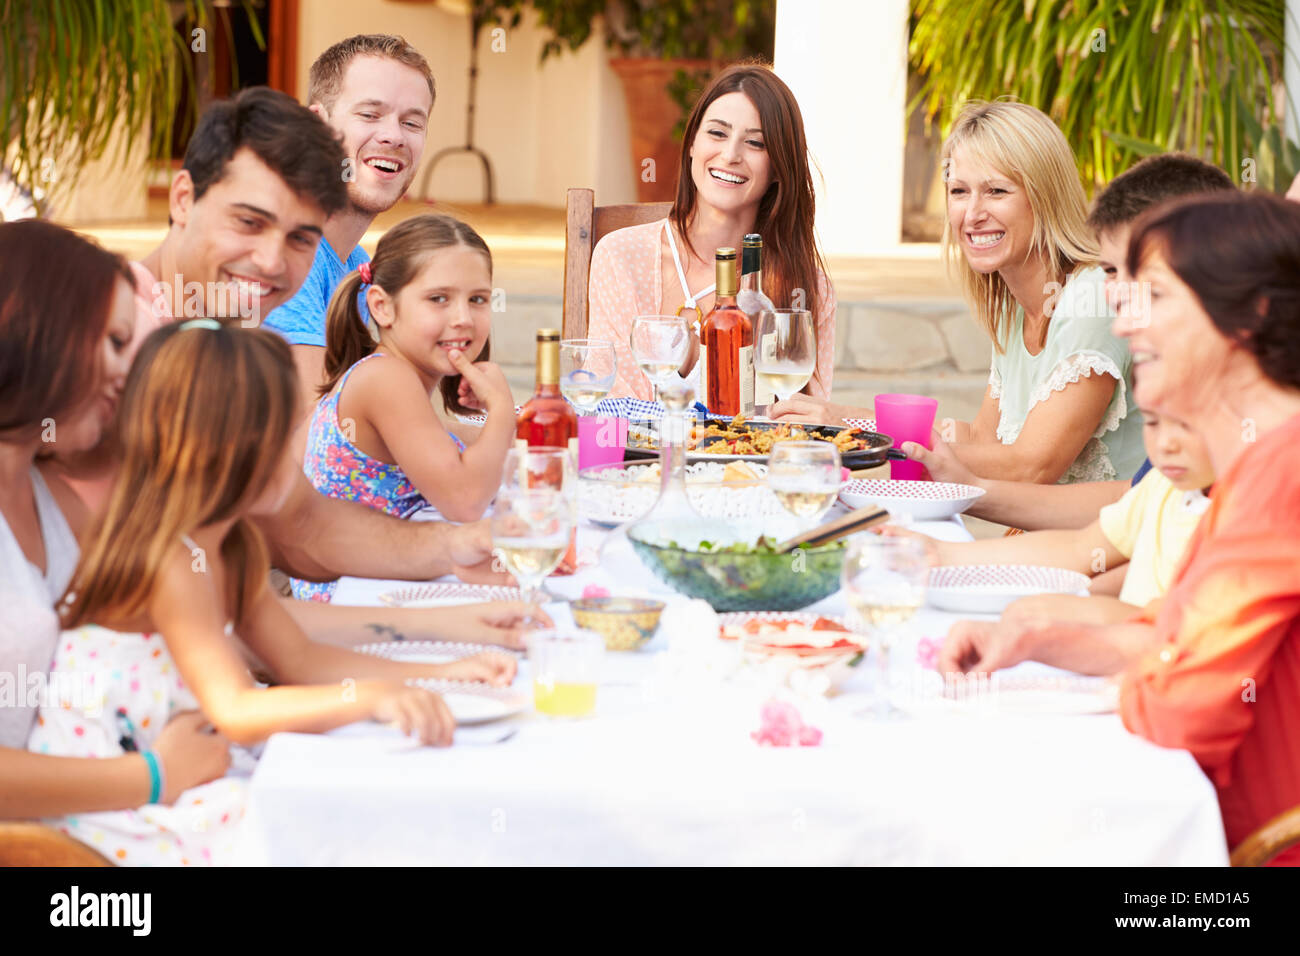 Large Family Group Enjoying Meal On Terrace Together - Stock Image